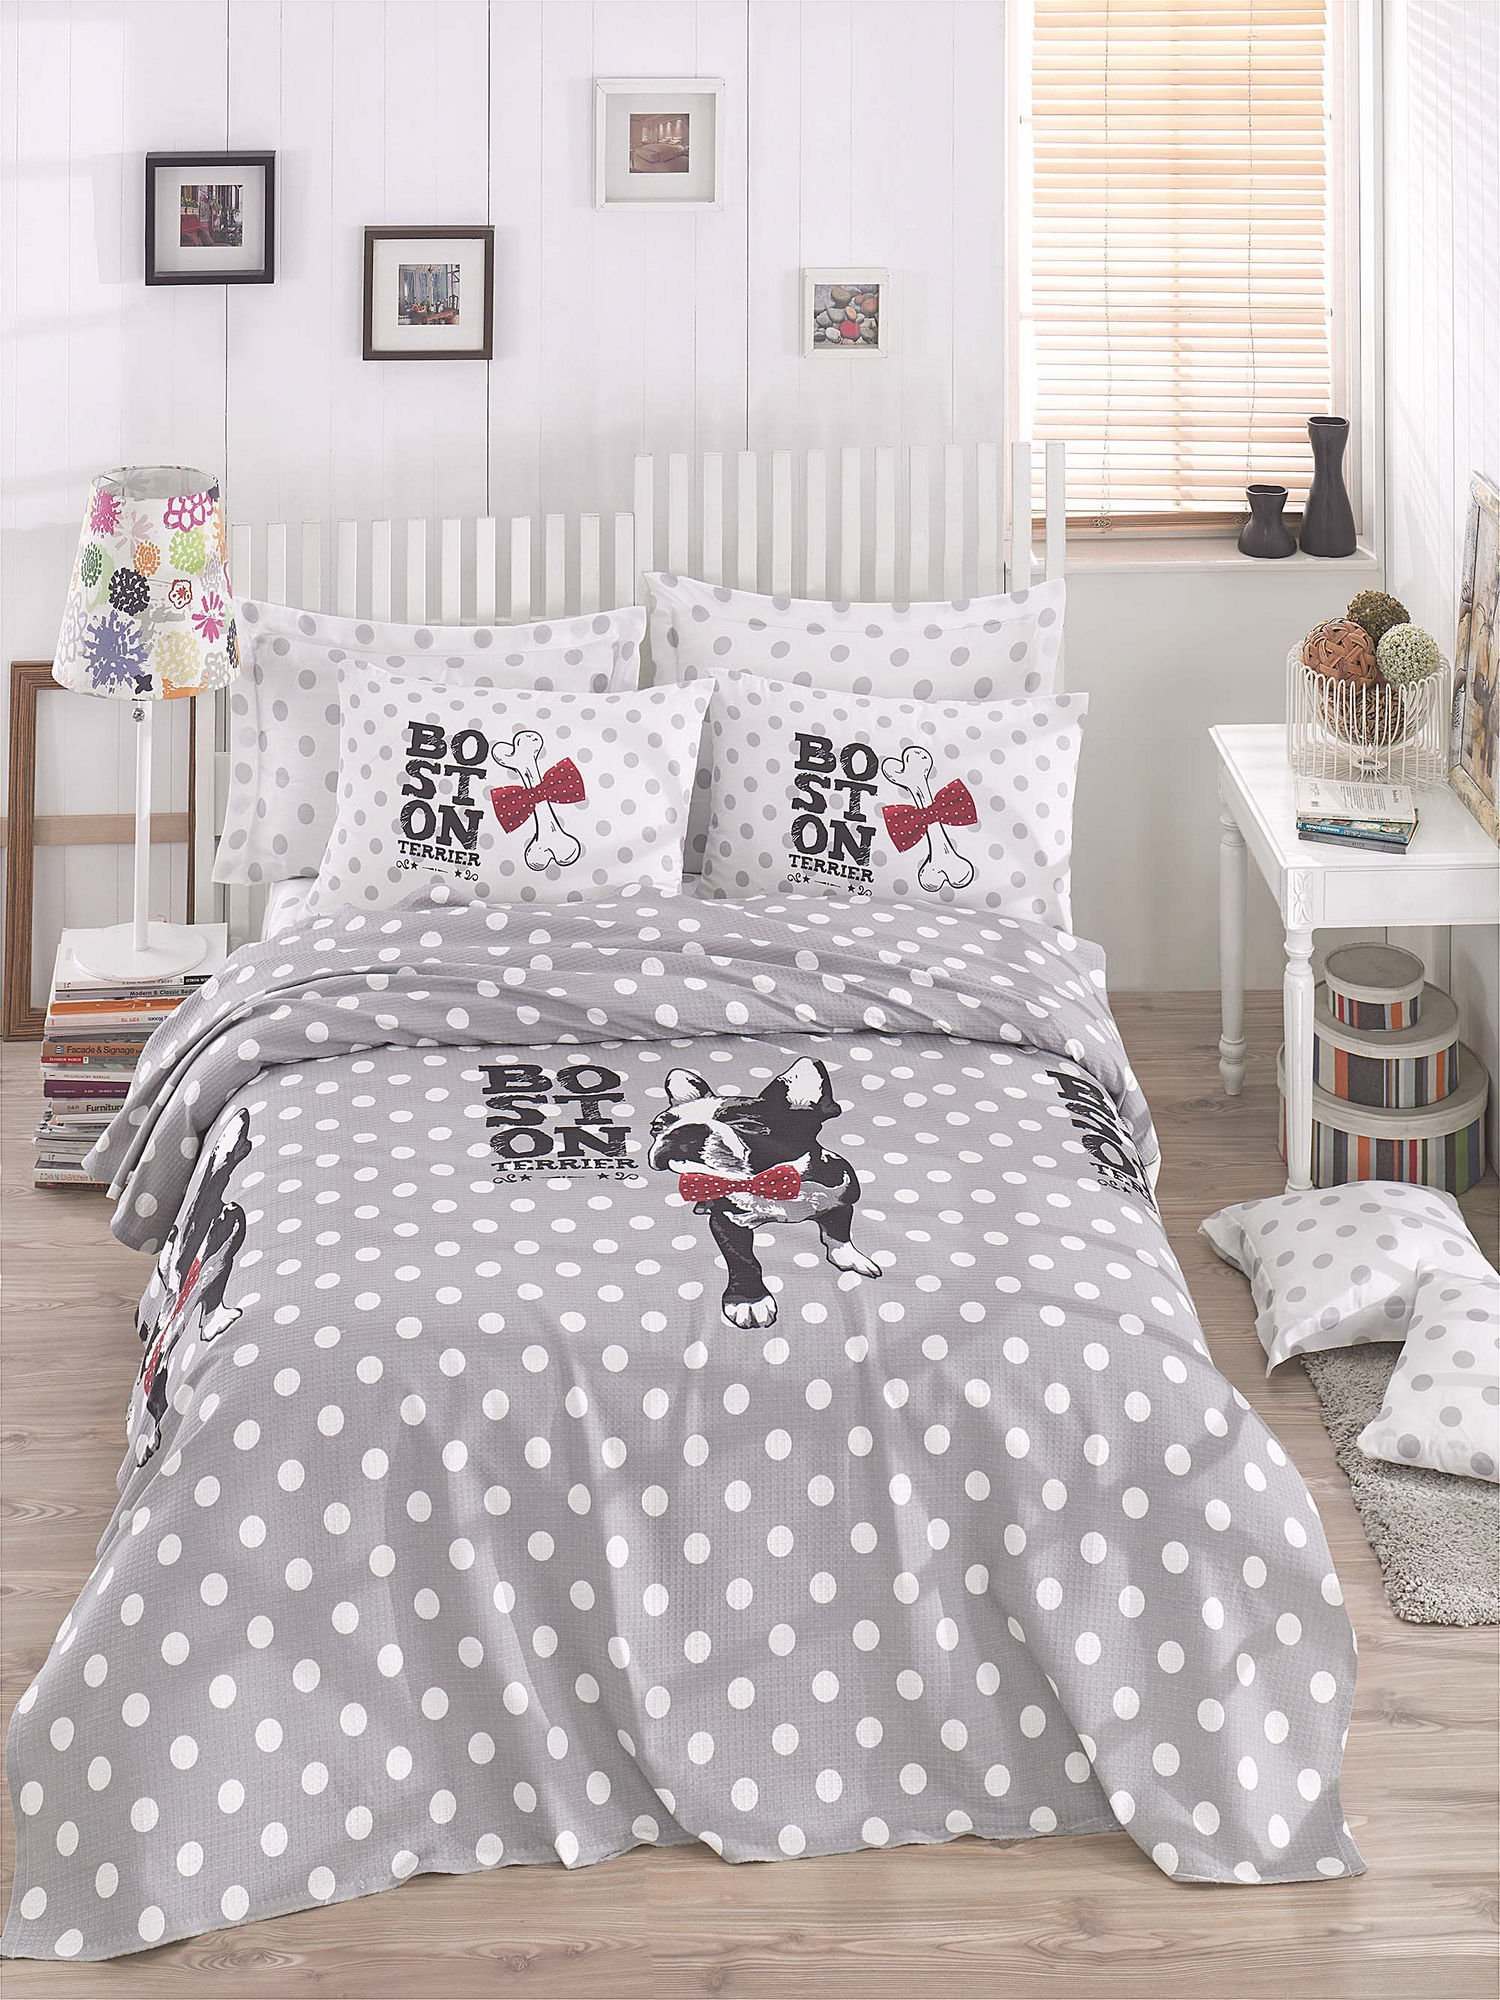 LaModaHome Polka-dot Coverlet, 100% Cotton - Boston Terrier, Bulldog with Red Bow Tie, Bones - Size (94.5'' x 86.6'') for Queen Bed